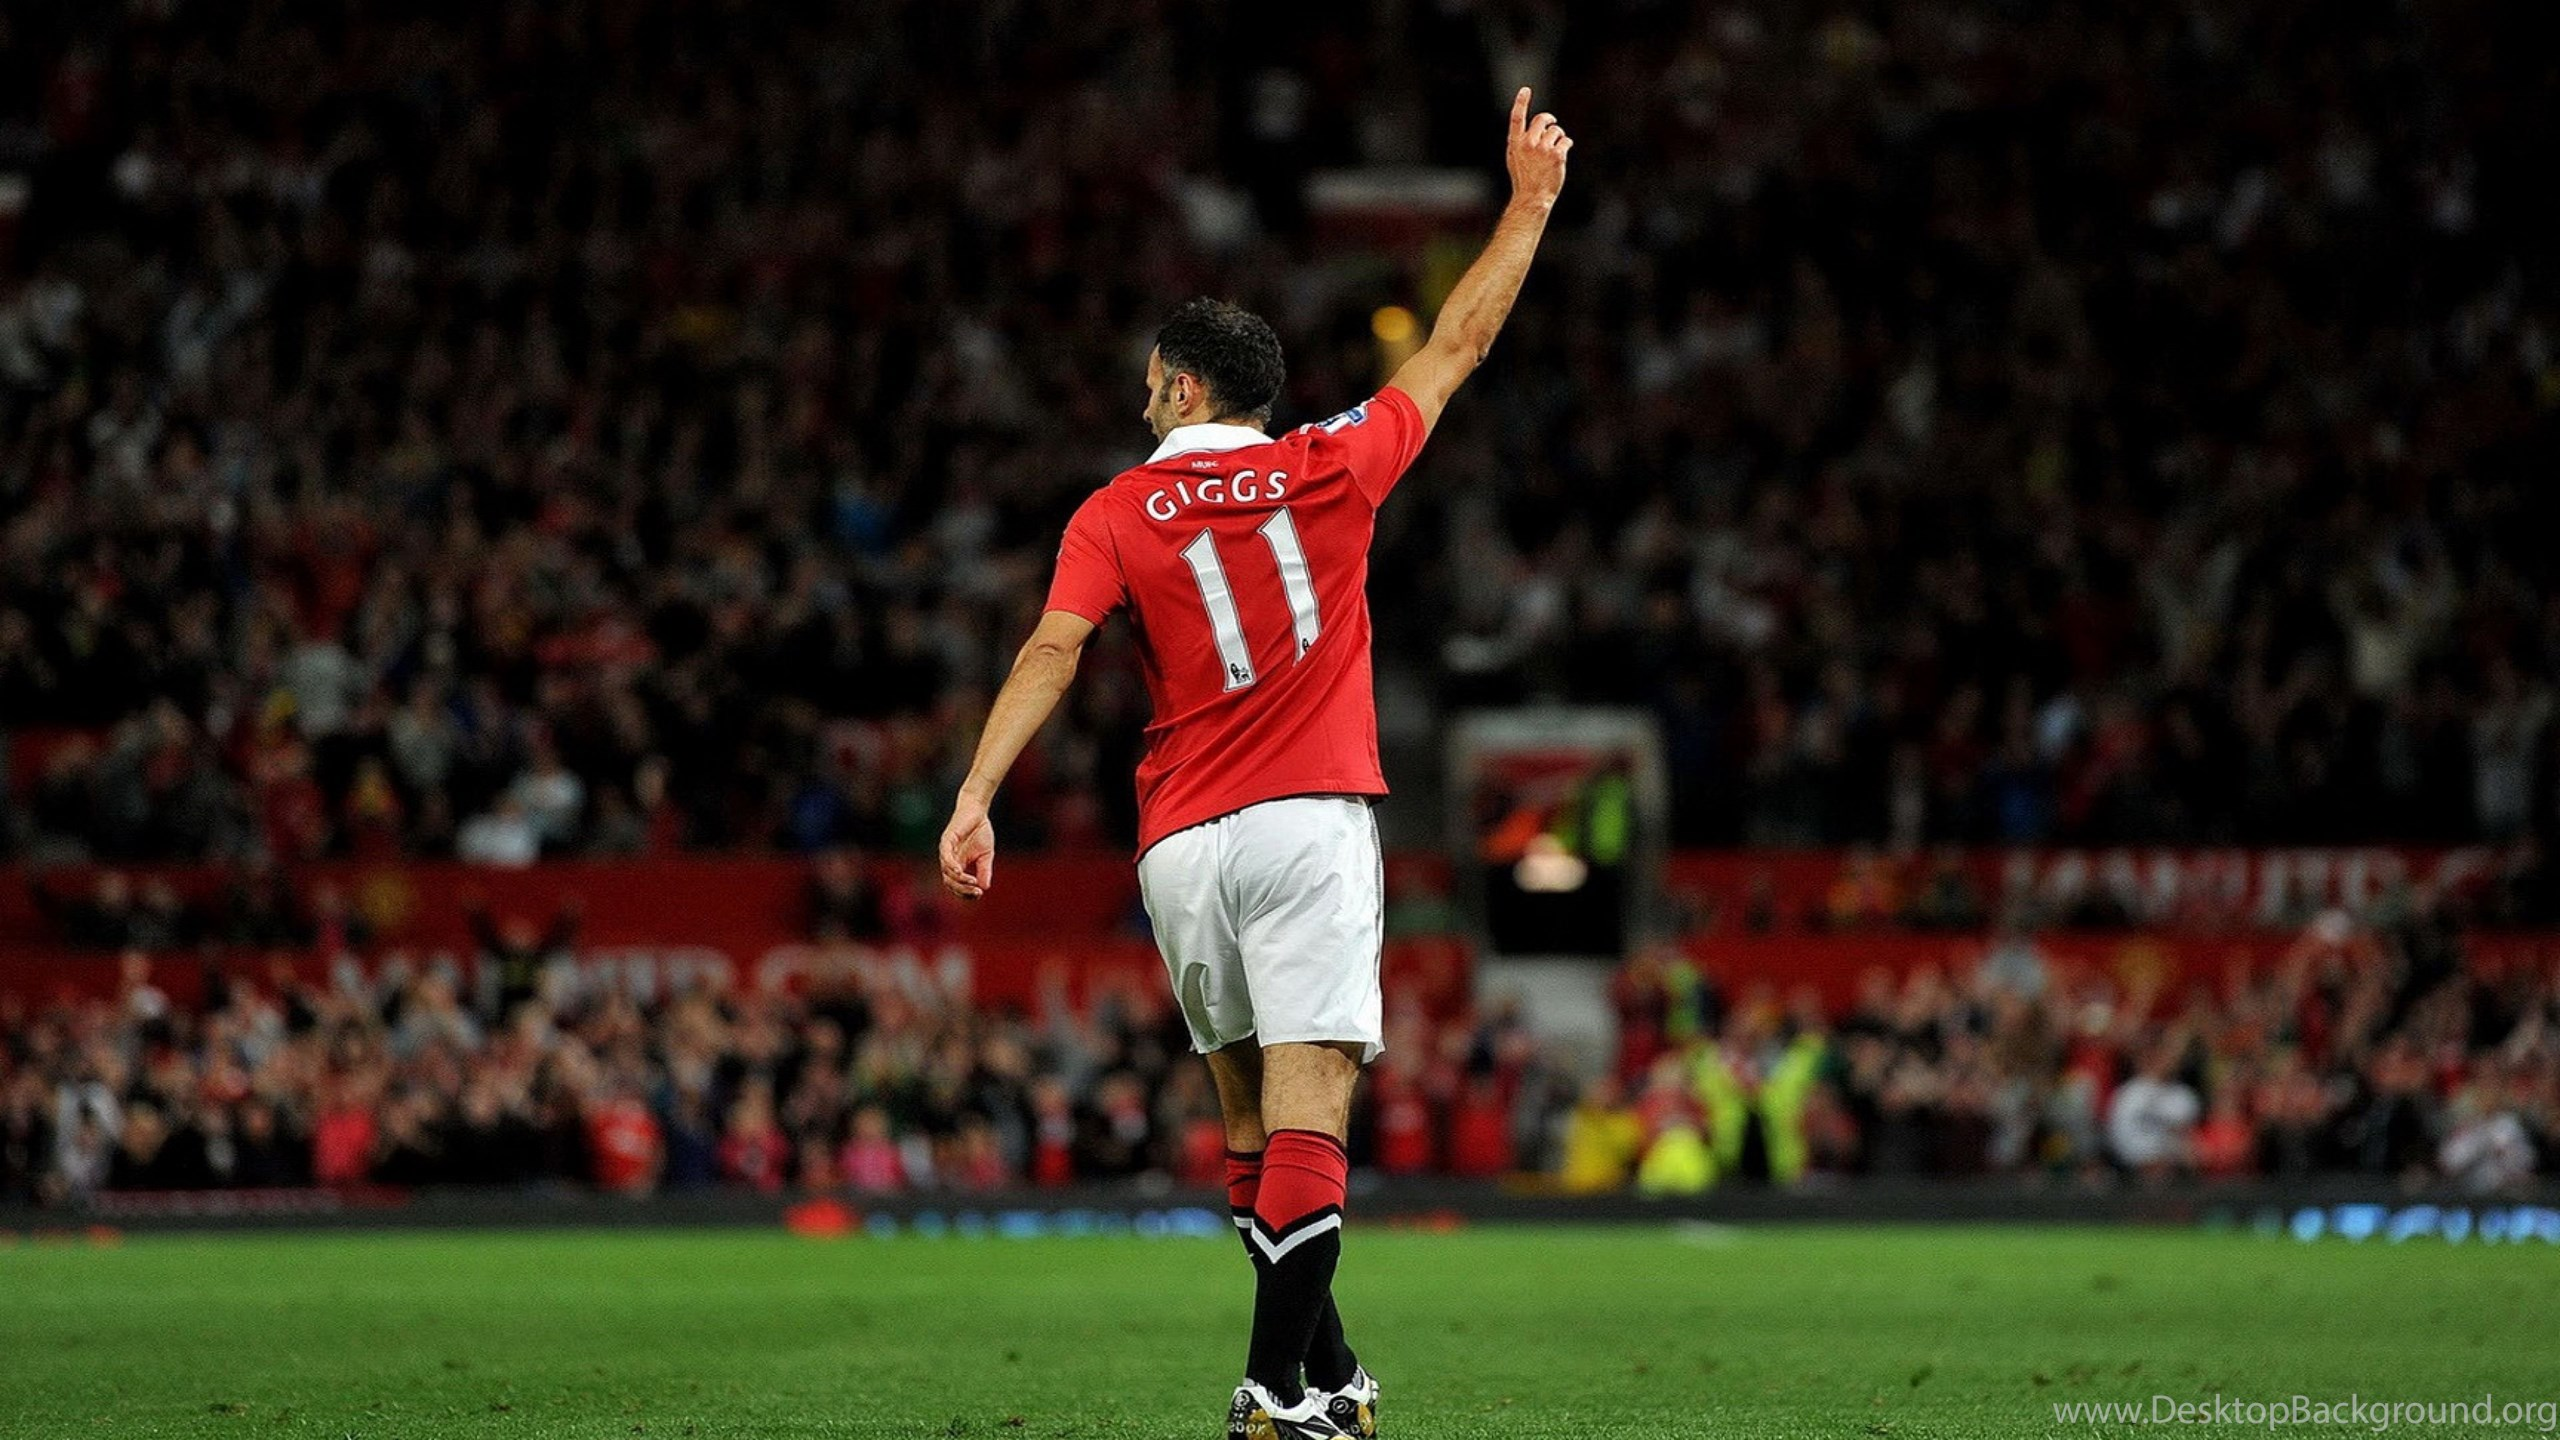 Ultra hd 4k manchester united wallpapers hd desktop backgrounds netbook voltagebd Image collections